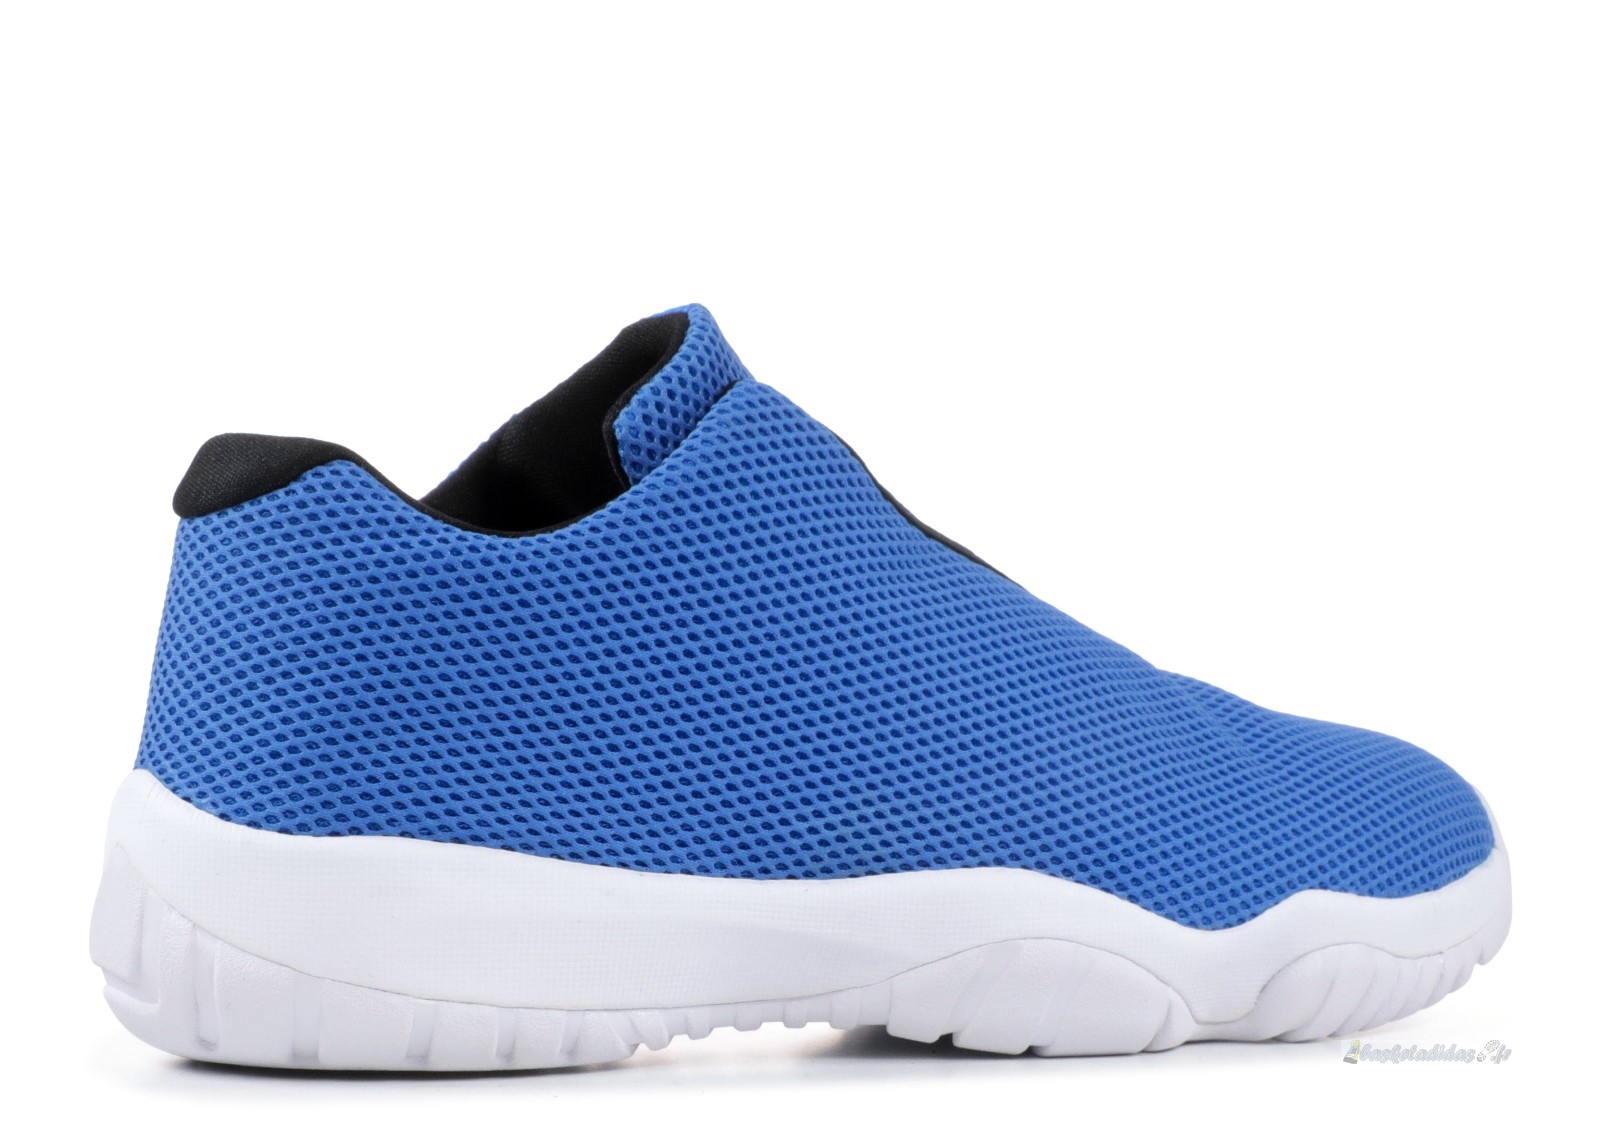 Chaussure de Basket Air Jordan Future Low Bleu Blanc 2 (718948-400)